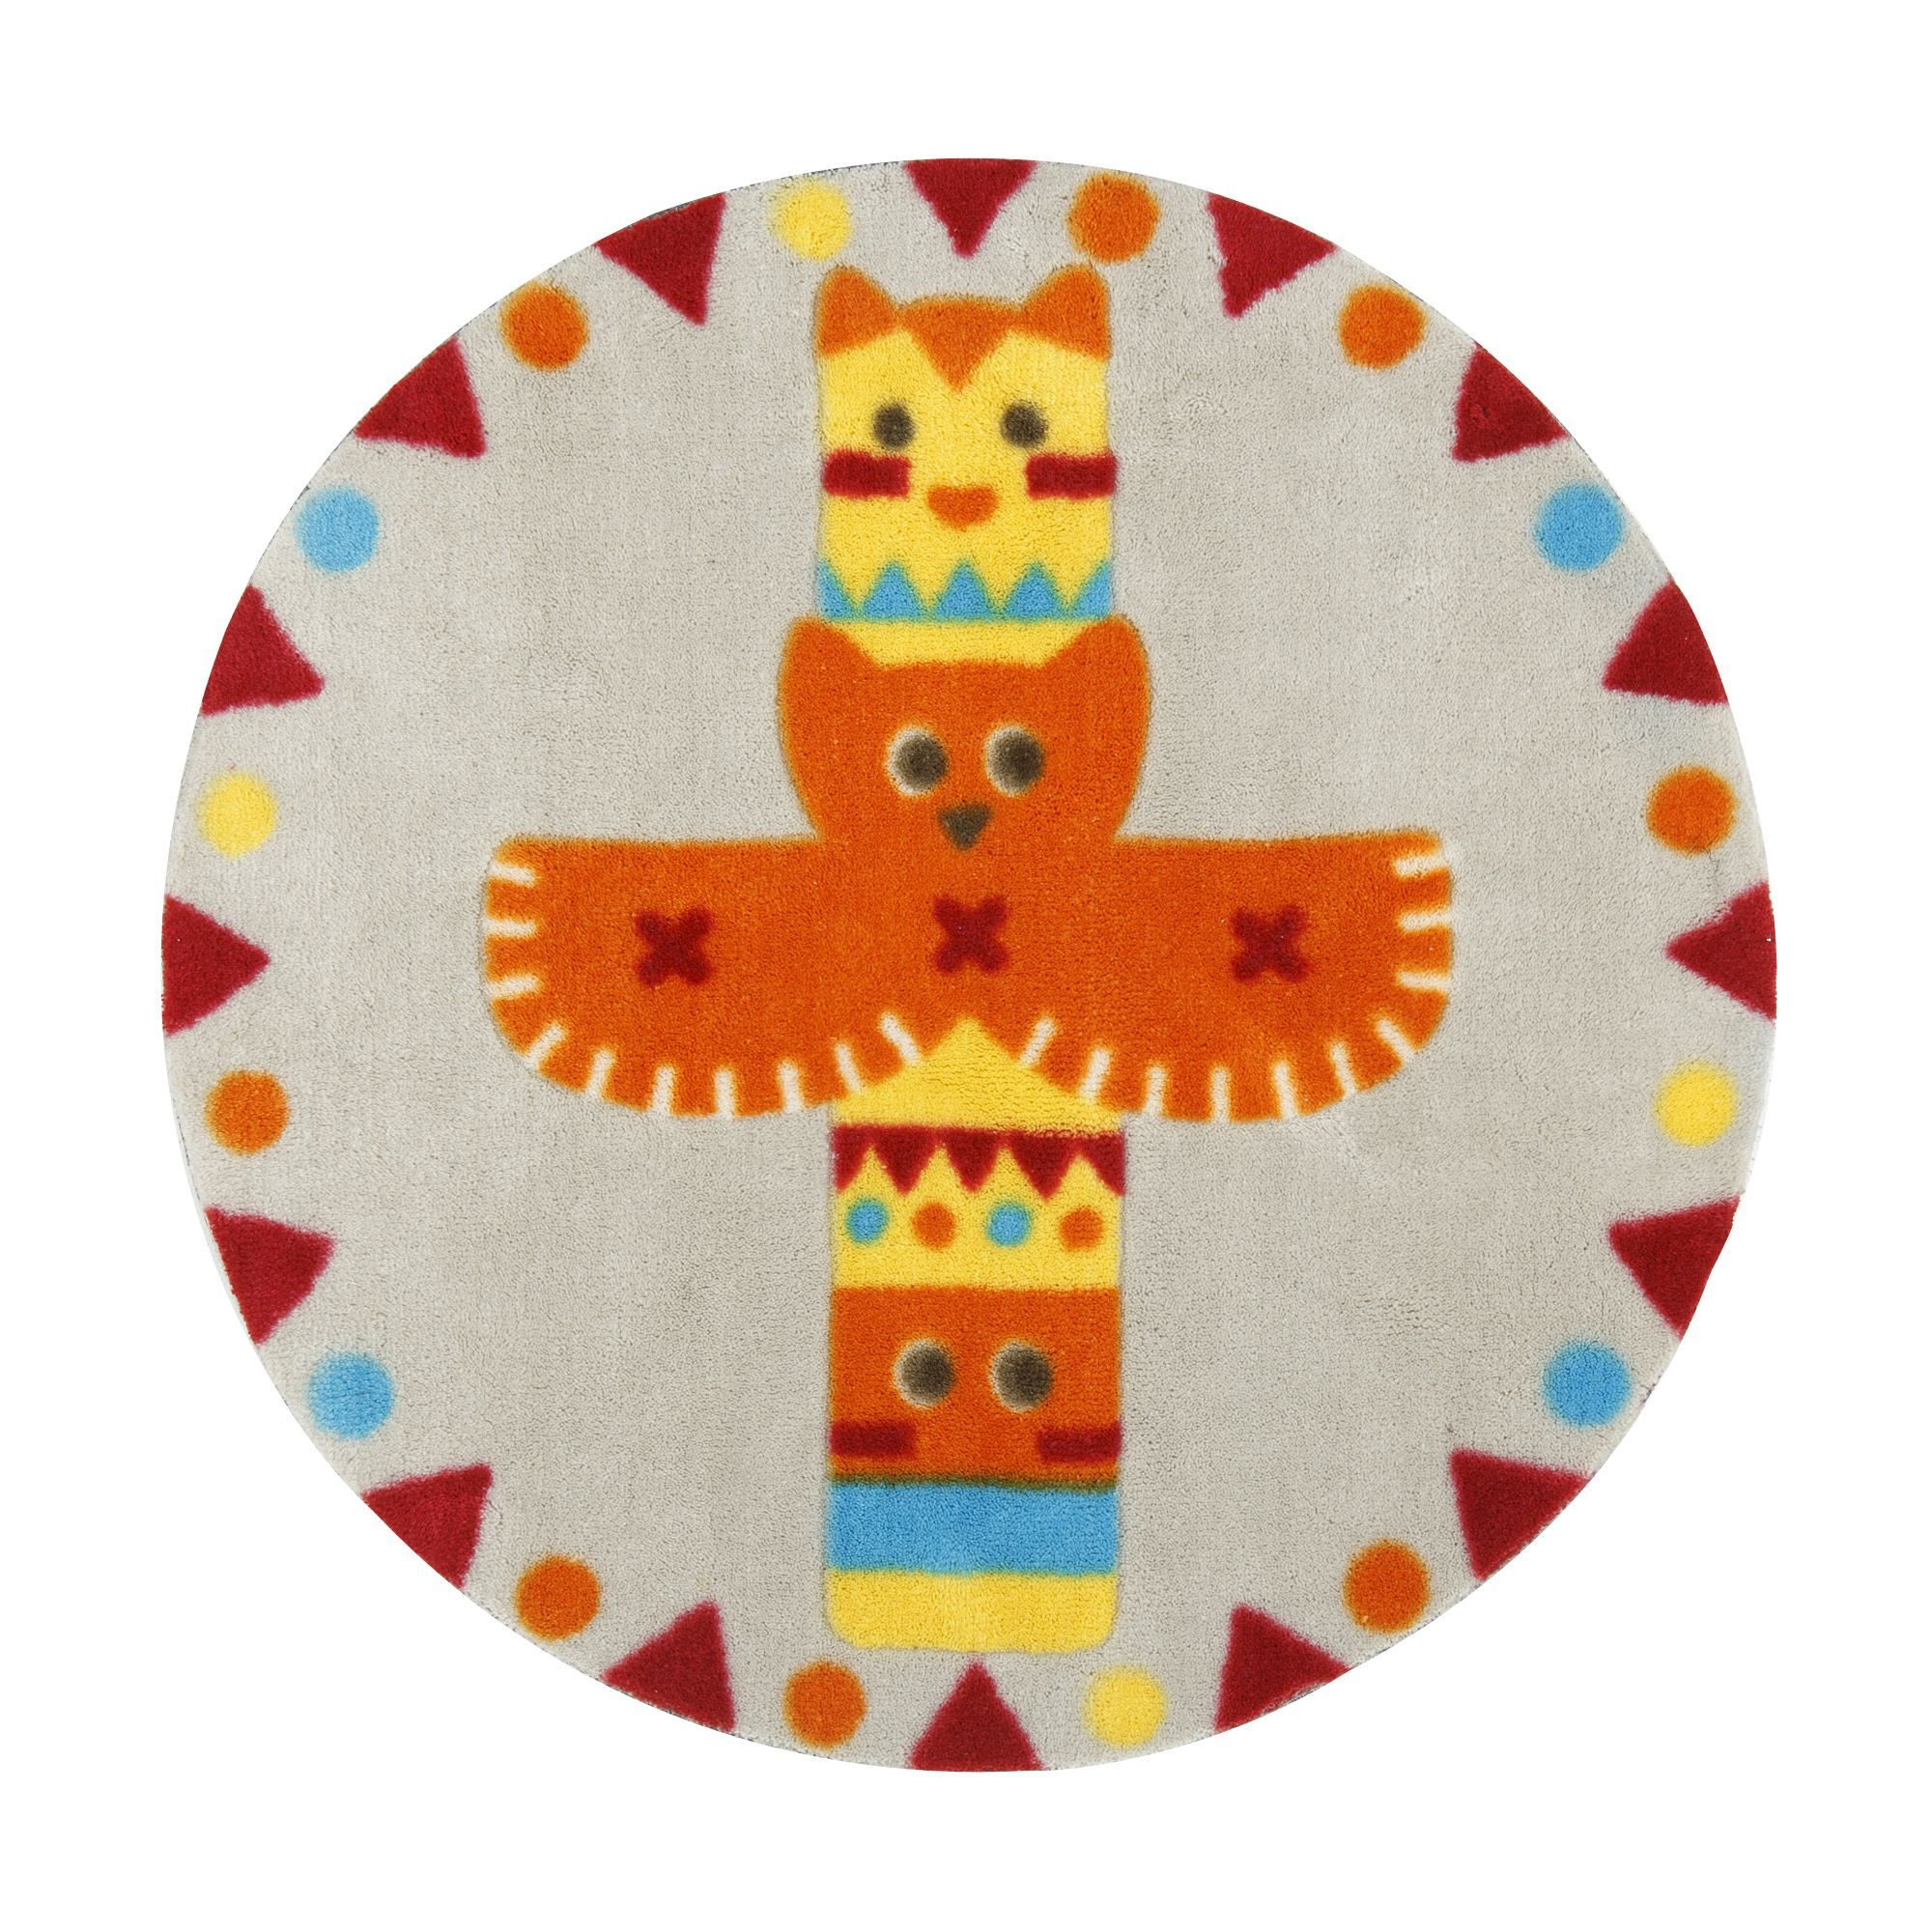 tapis rond d70cm pour enfant motif totem gris orange indiana les tapis de chambre d 39 enfants. Black Bedroom Furniture Sets. Home Design Ideas